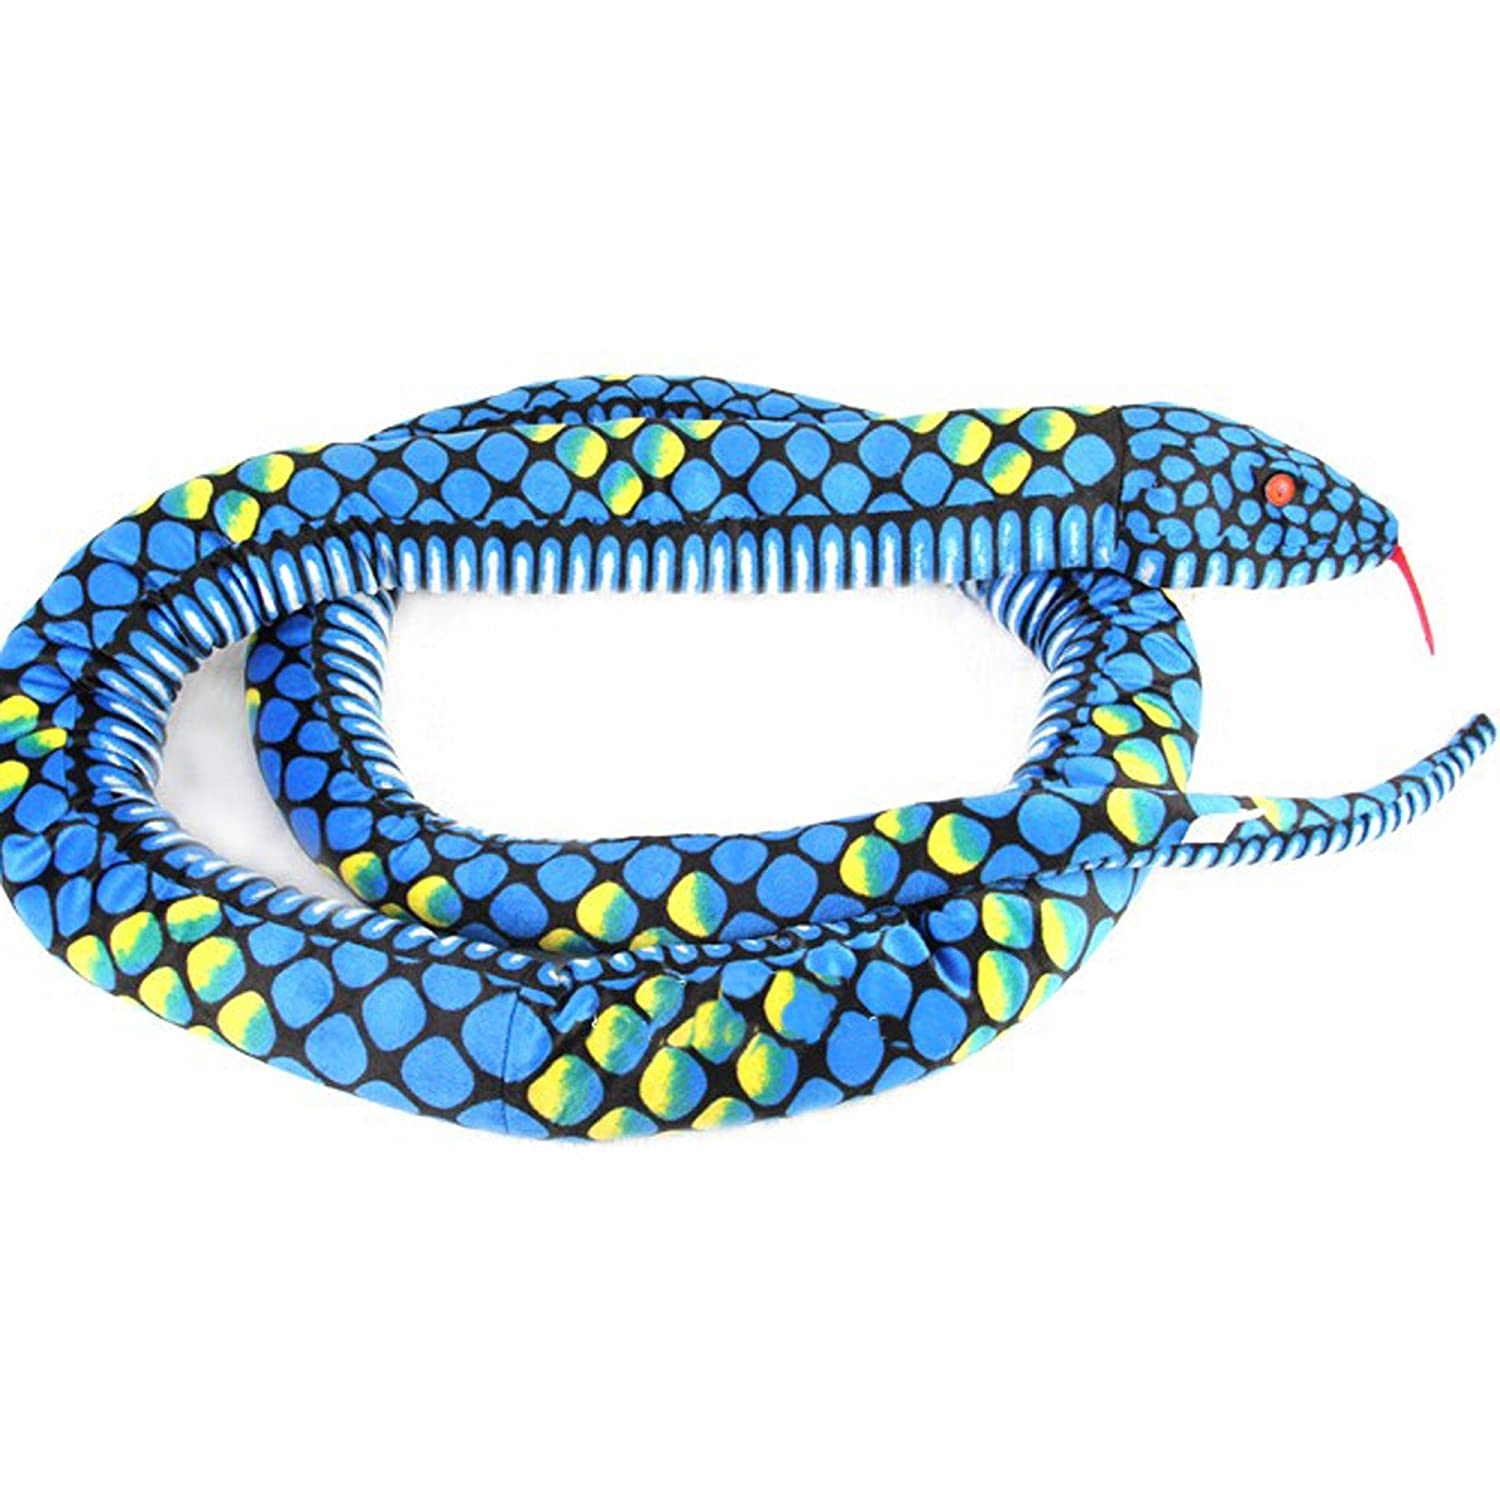 Lazada Realistic Stuffed Giant Boa Constrictor Dolls Plush Snake Toys Green Over 5.5 Feet Long